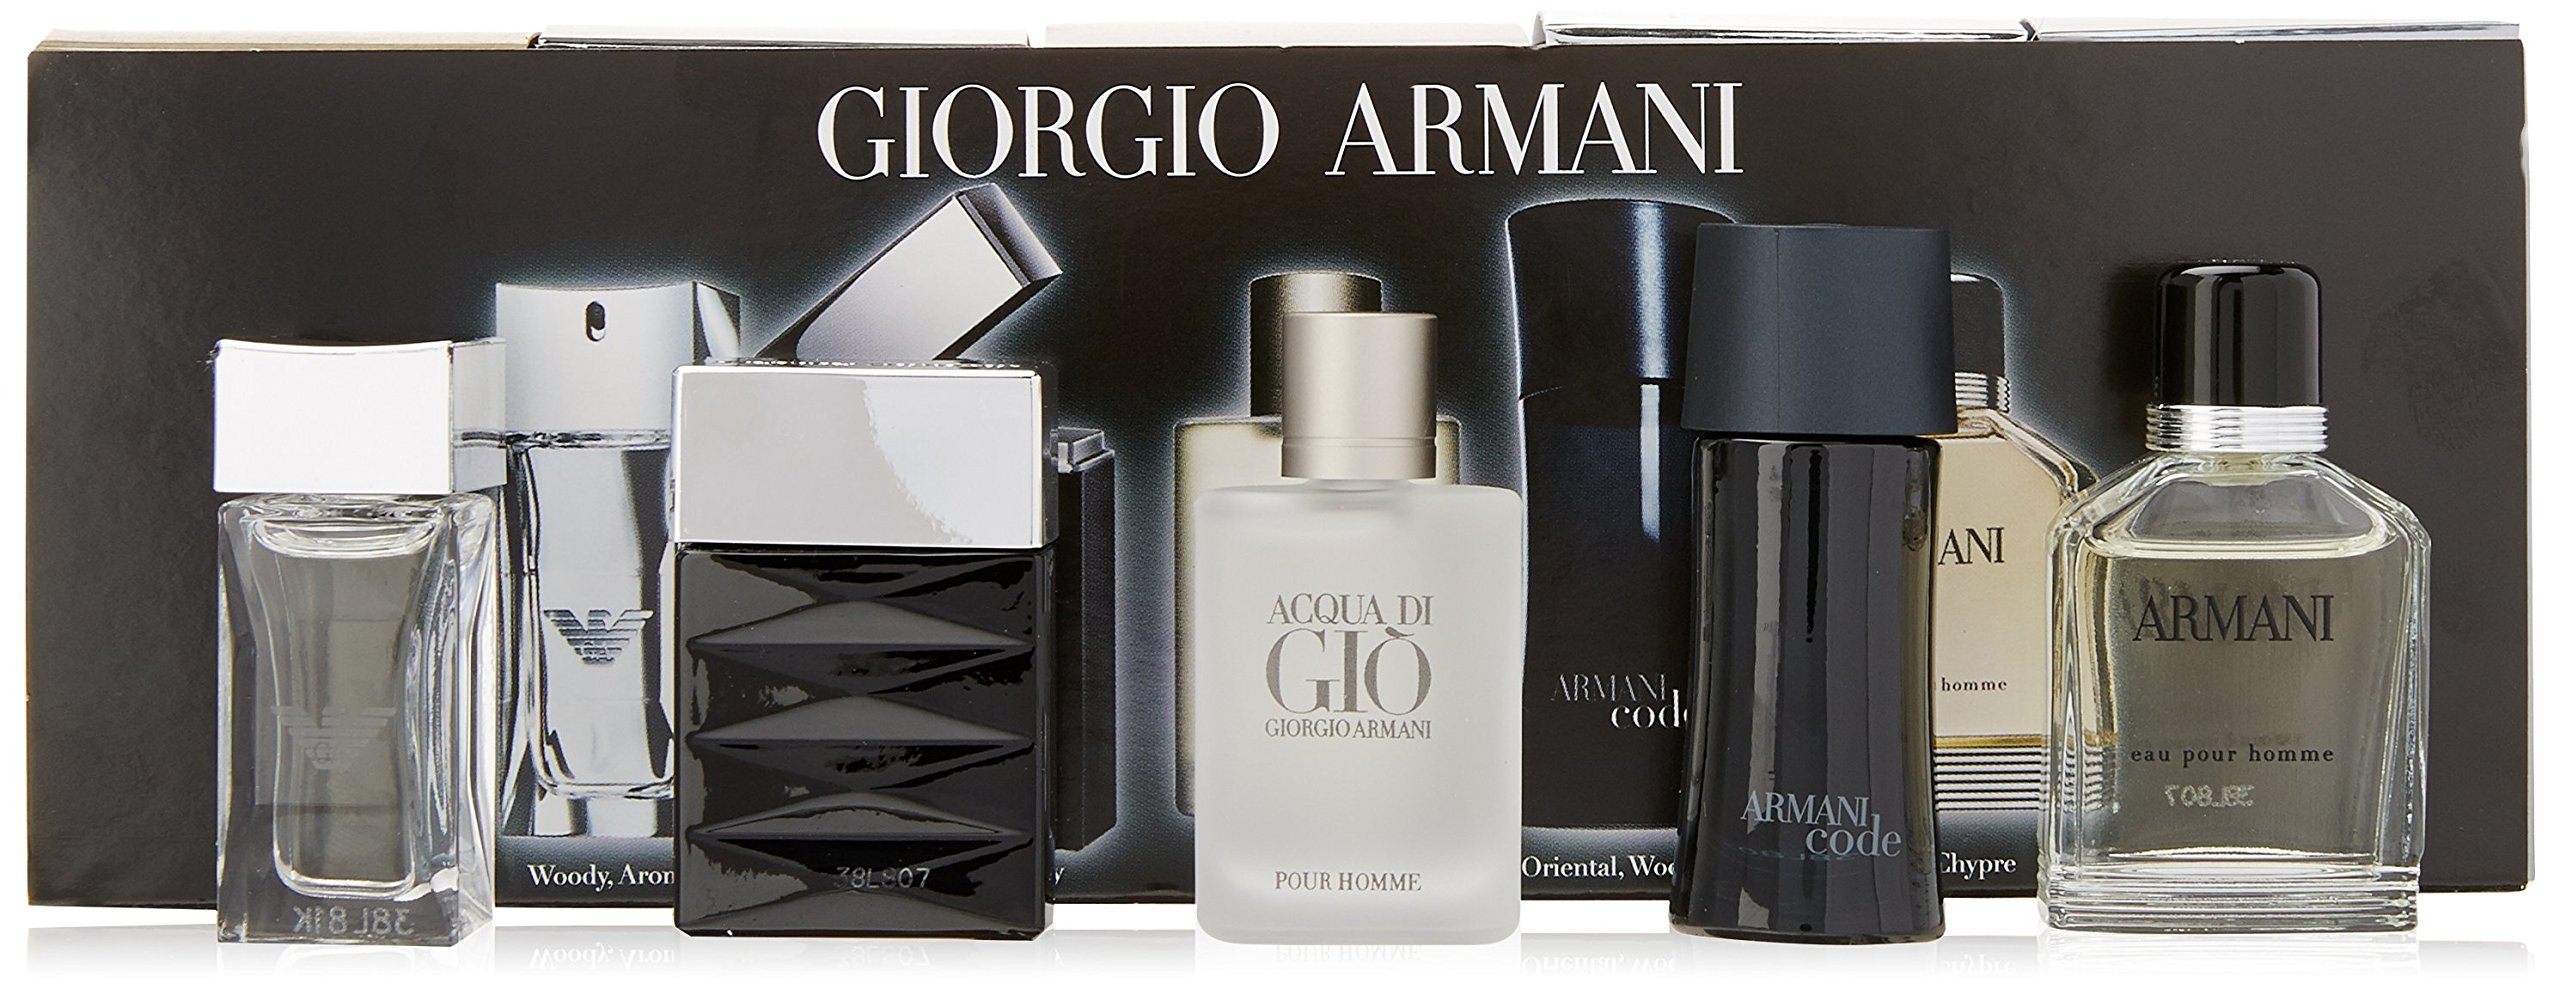 Giorgio Armani Mini Attitude 5 Piece Gift Set for Men by GIORGIO ARMANI